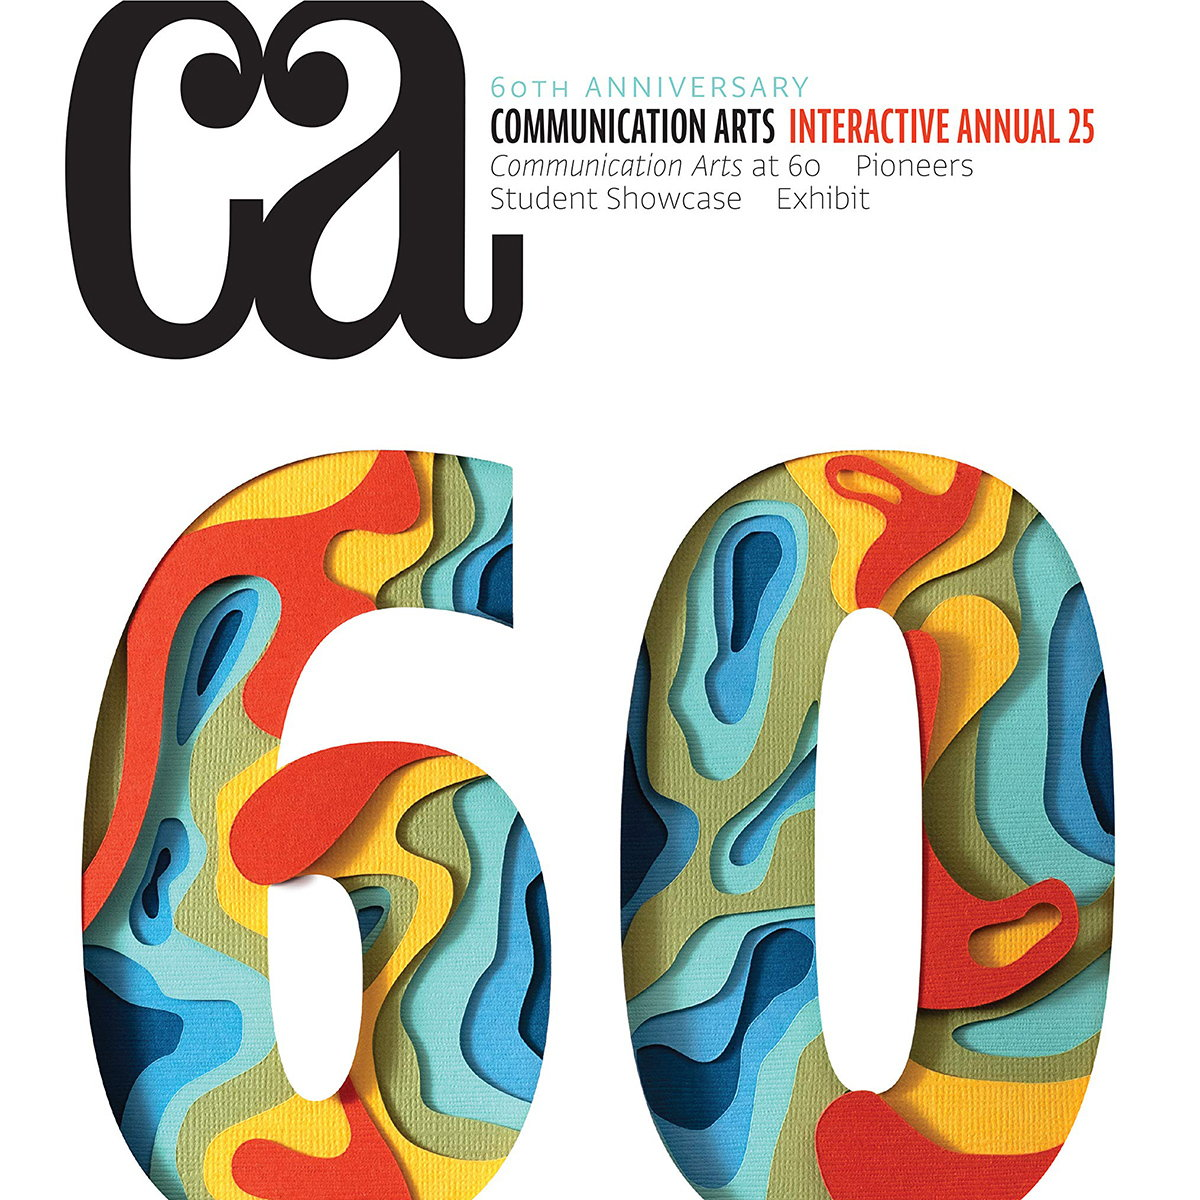 Communication Arts Publishes Interactive Annual 25